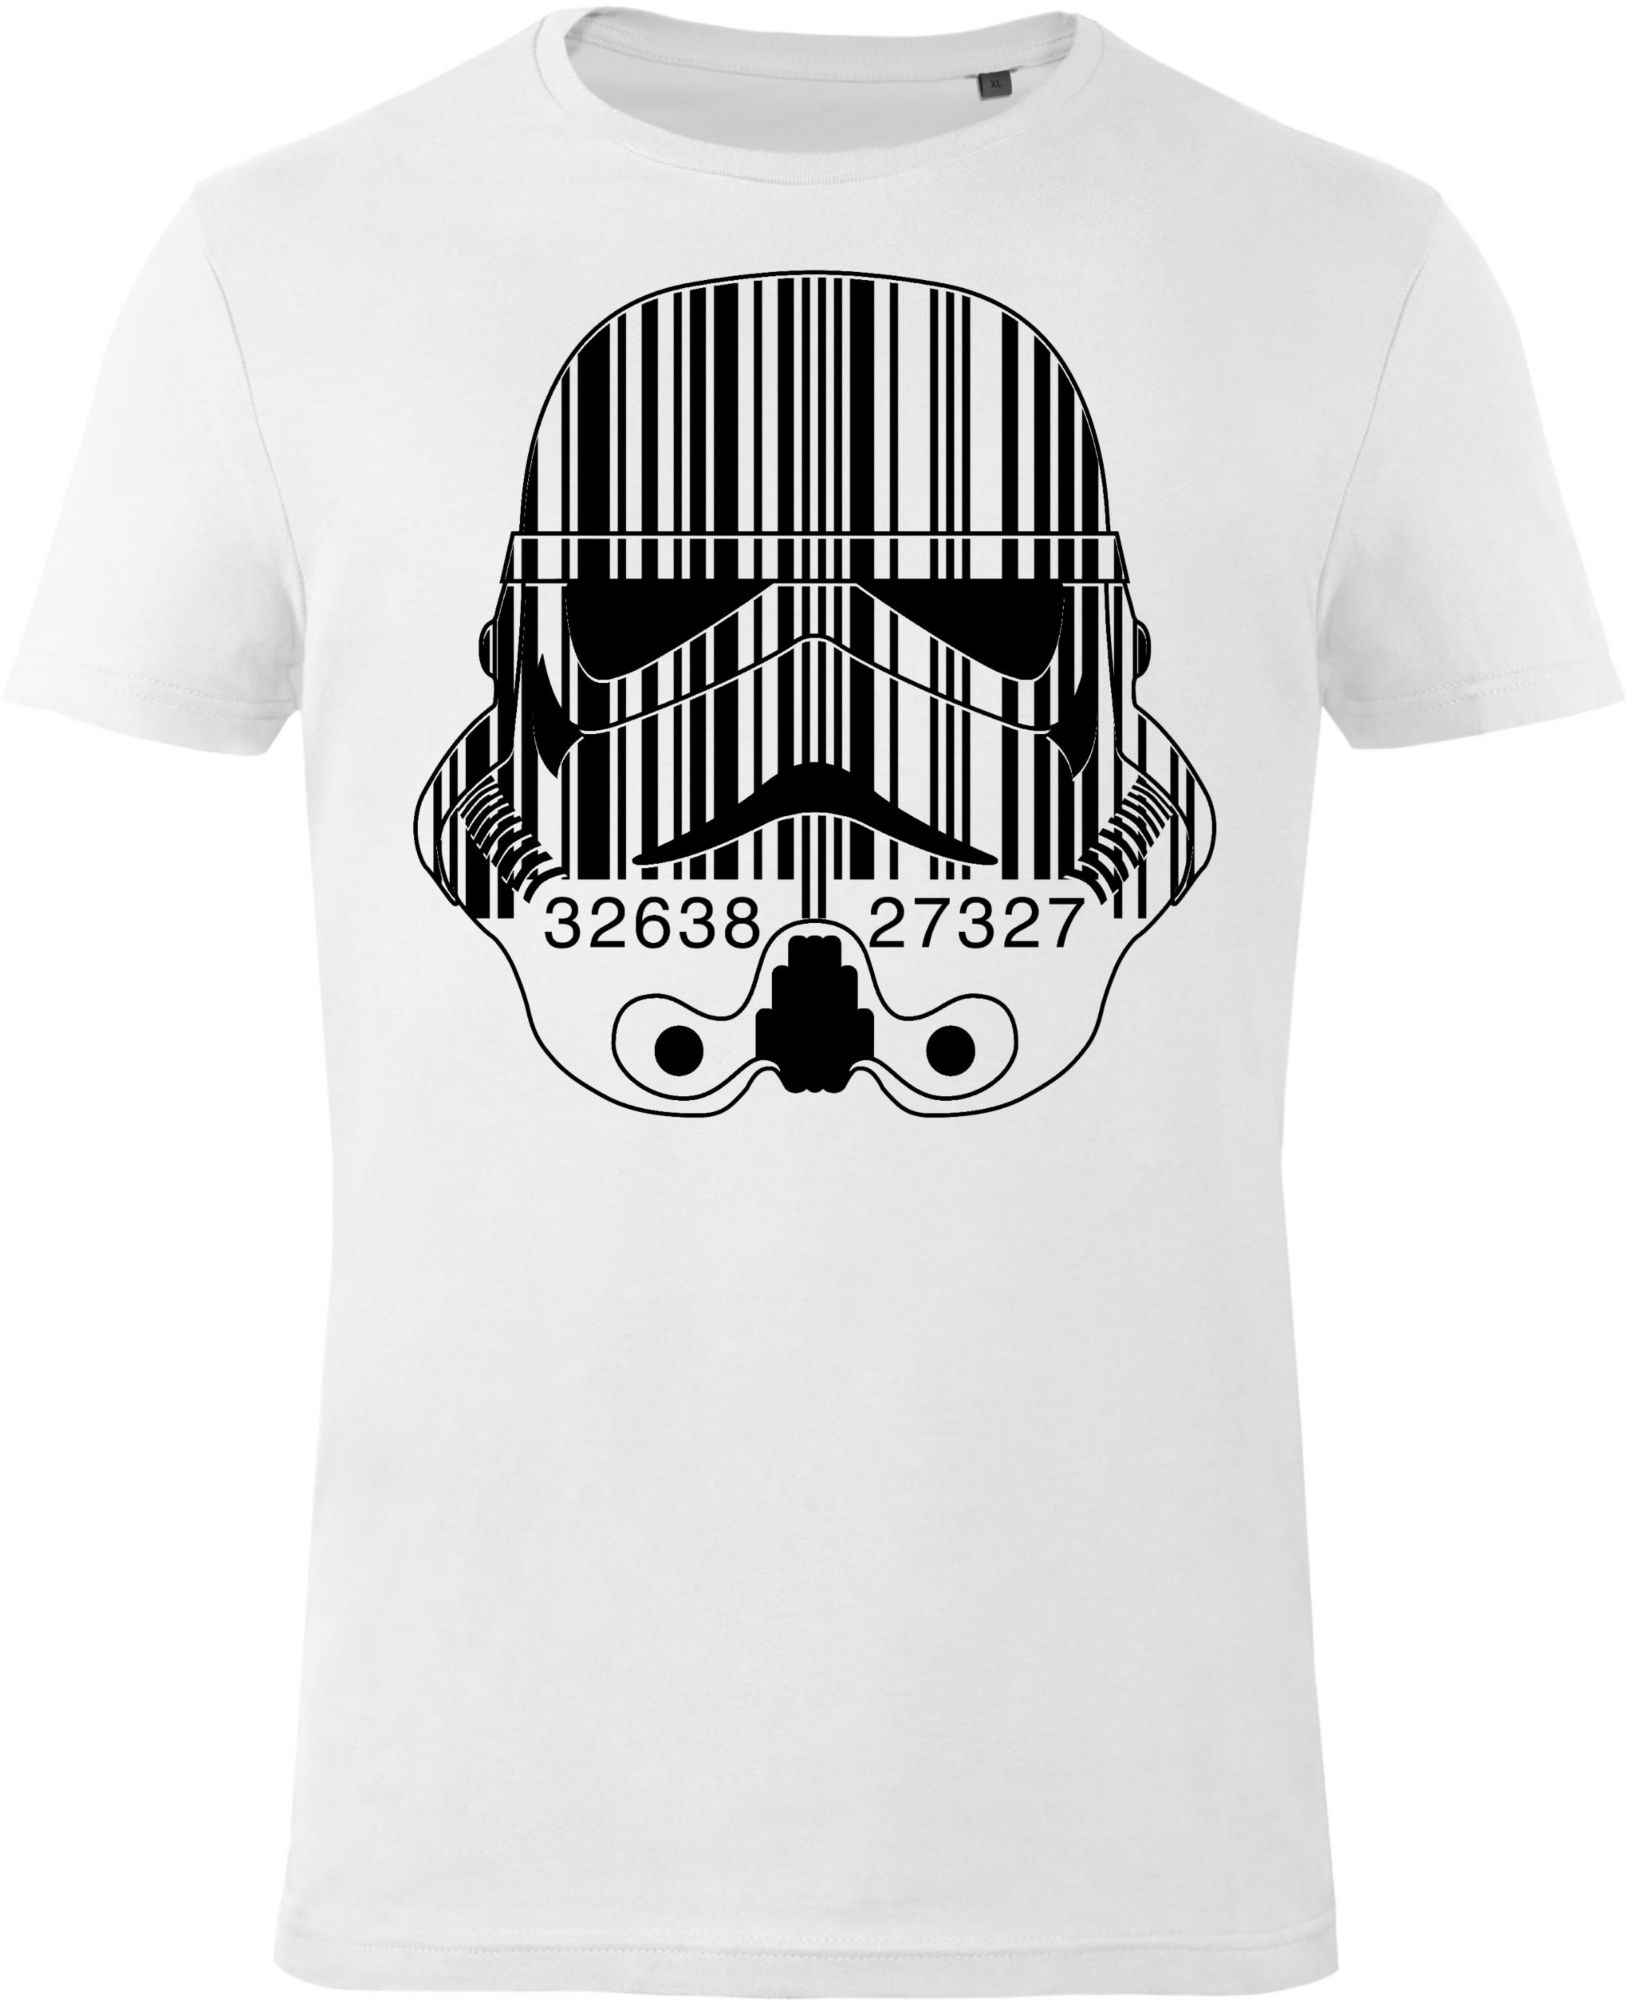 GOZOO Gozoo T-Shirt »Star Wars - Imperial Stormtrooper - Barcode«